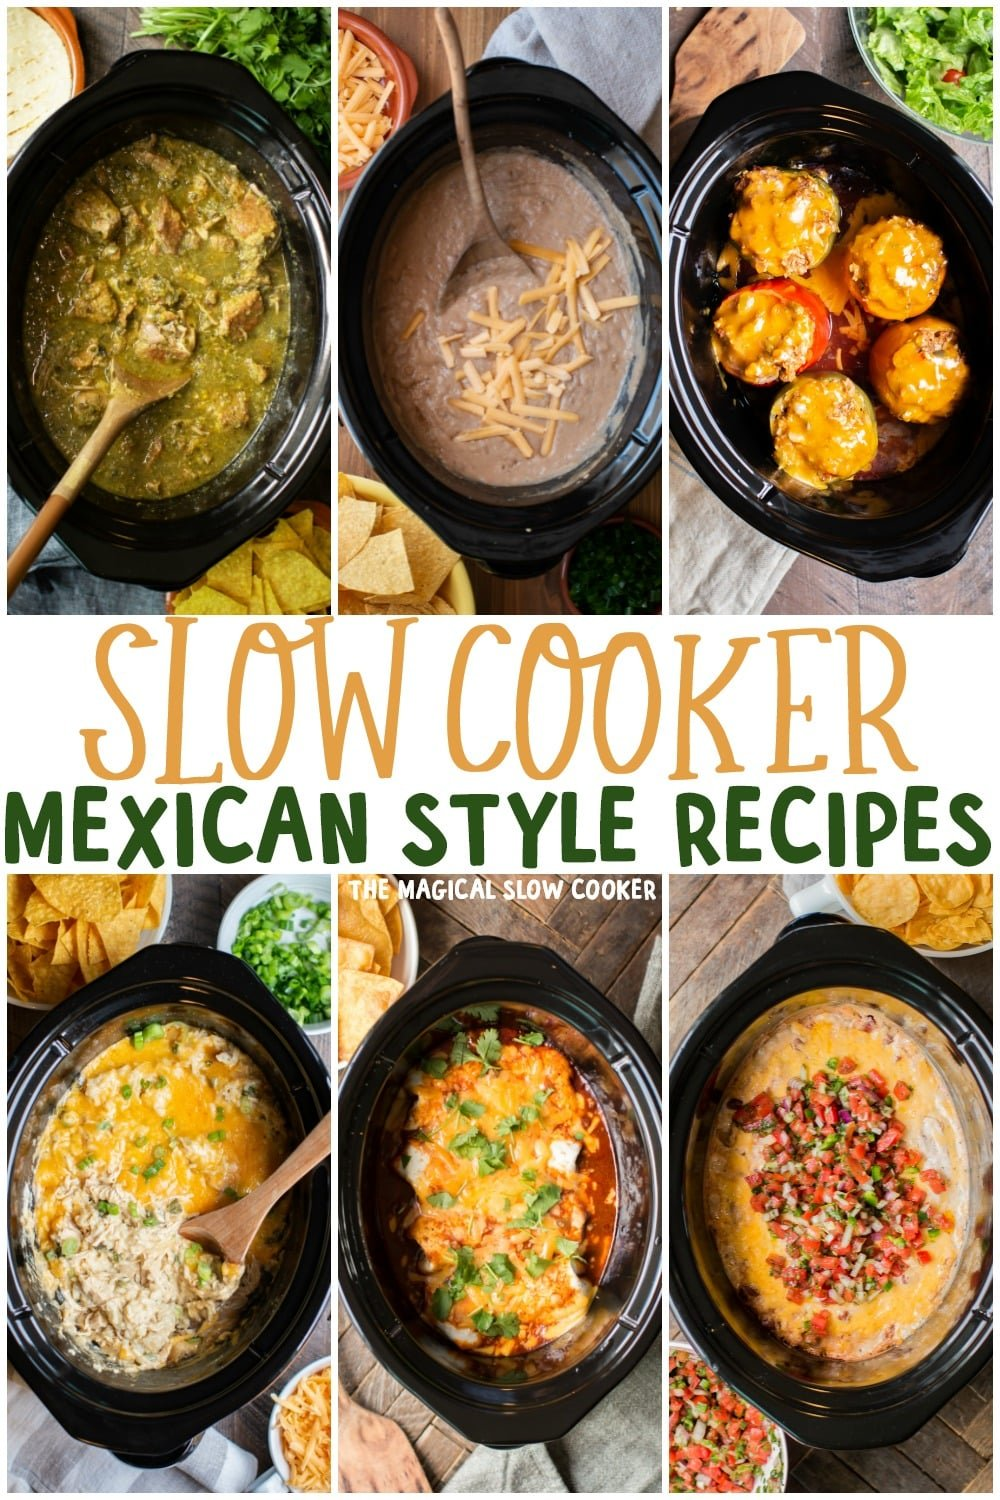 25 Mexican Style Slow Cooker Recipes The Magical Slow Cooker